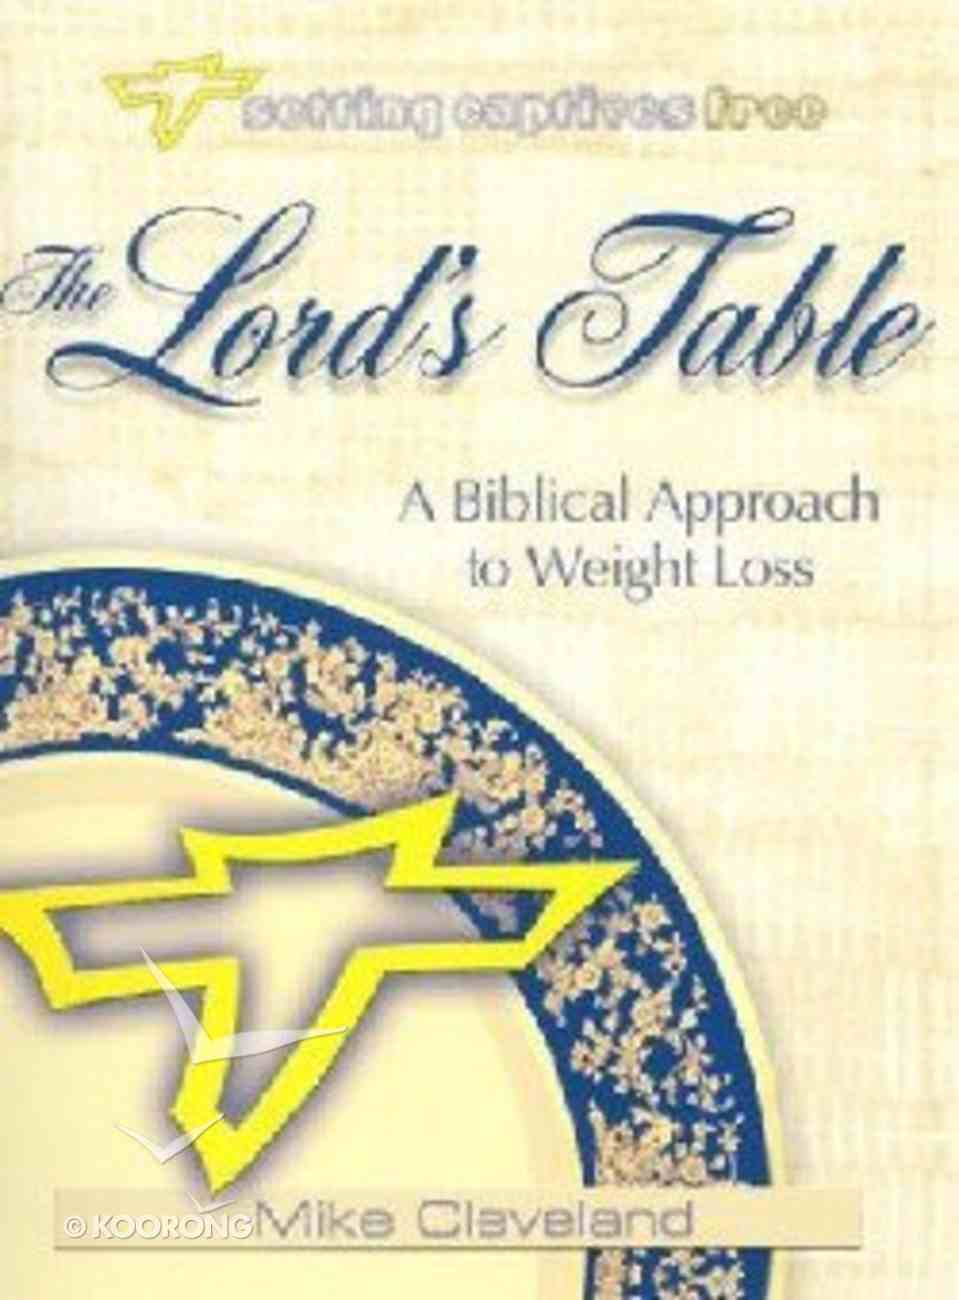 The Lord's Table Spiral